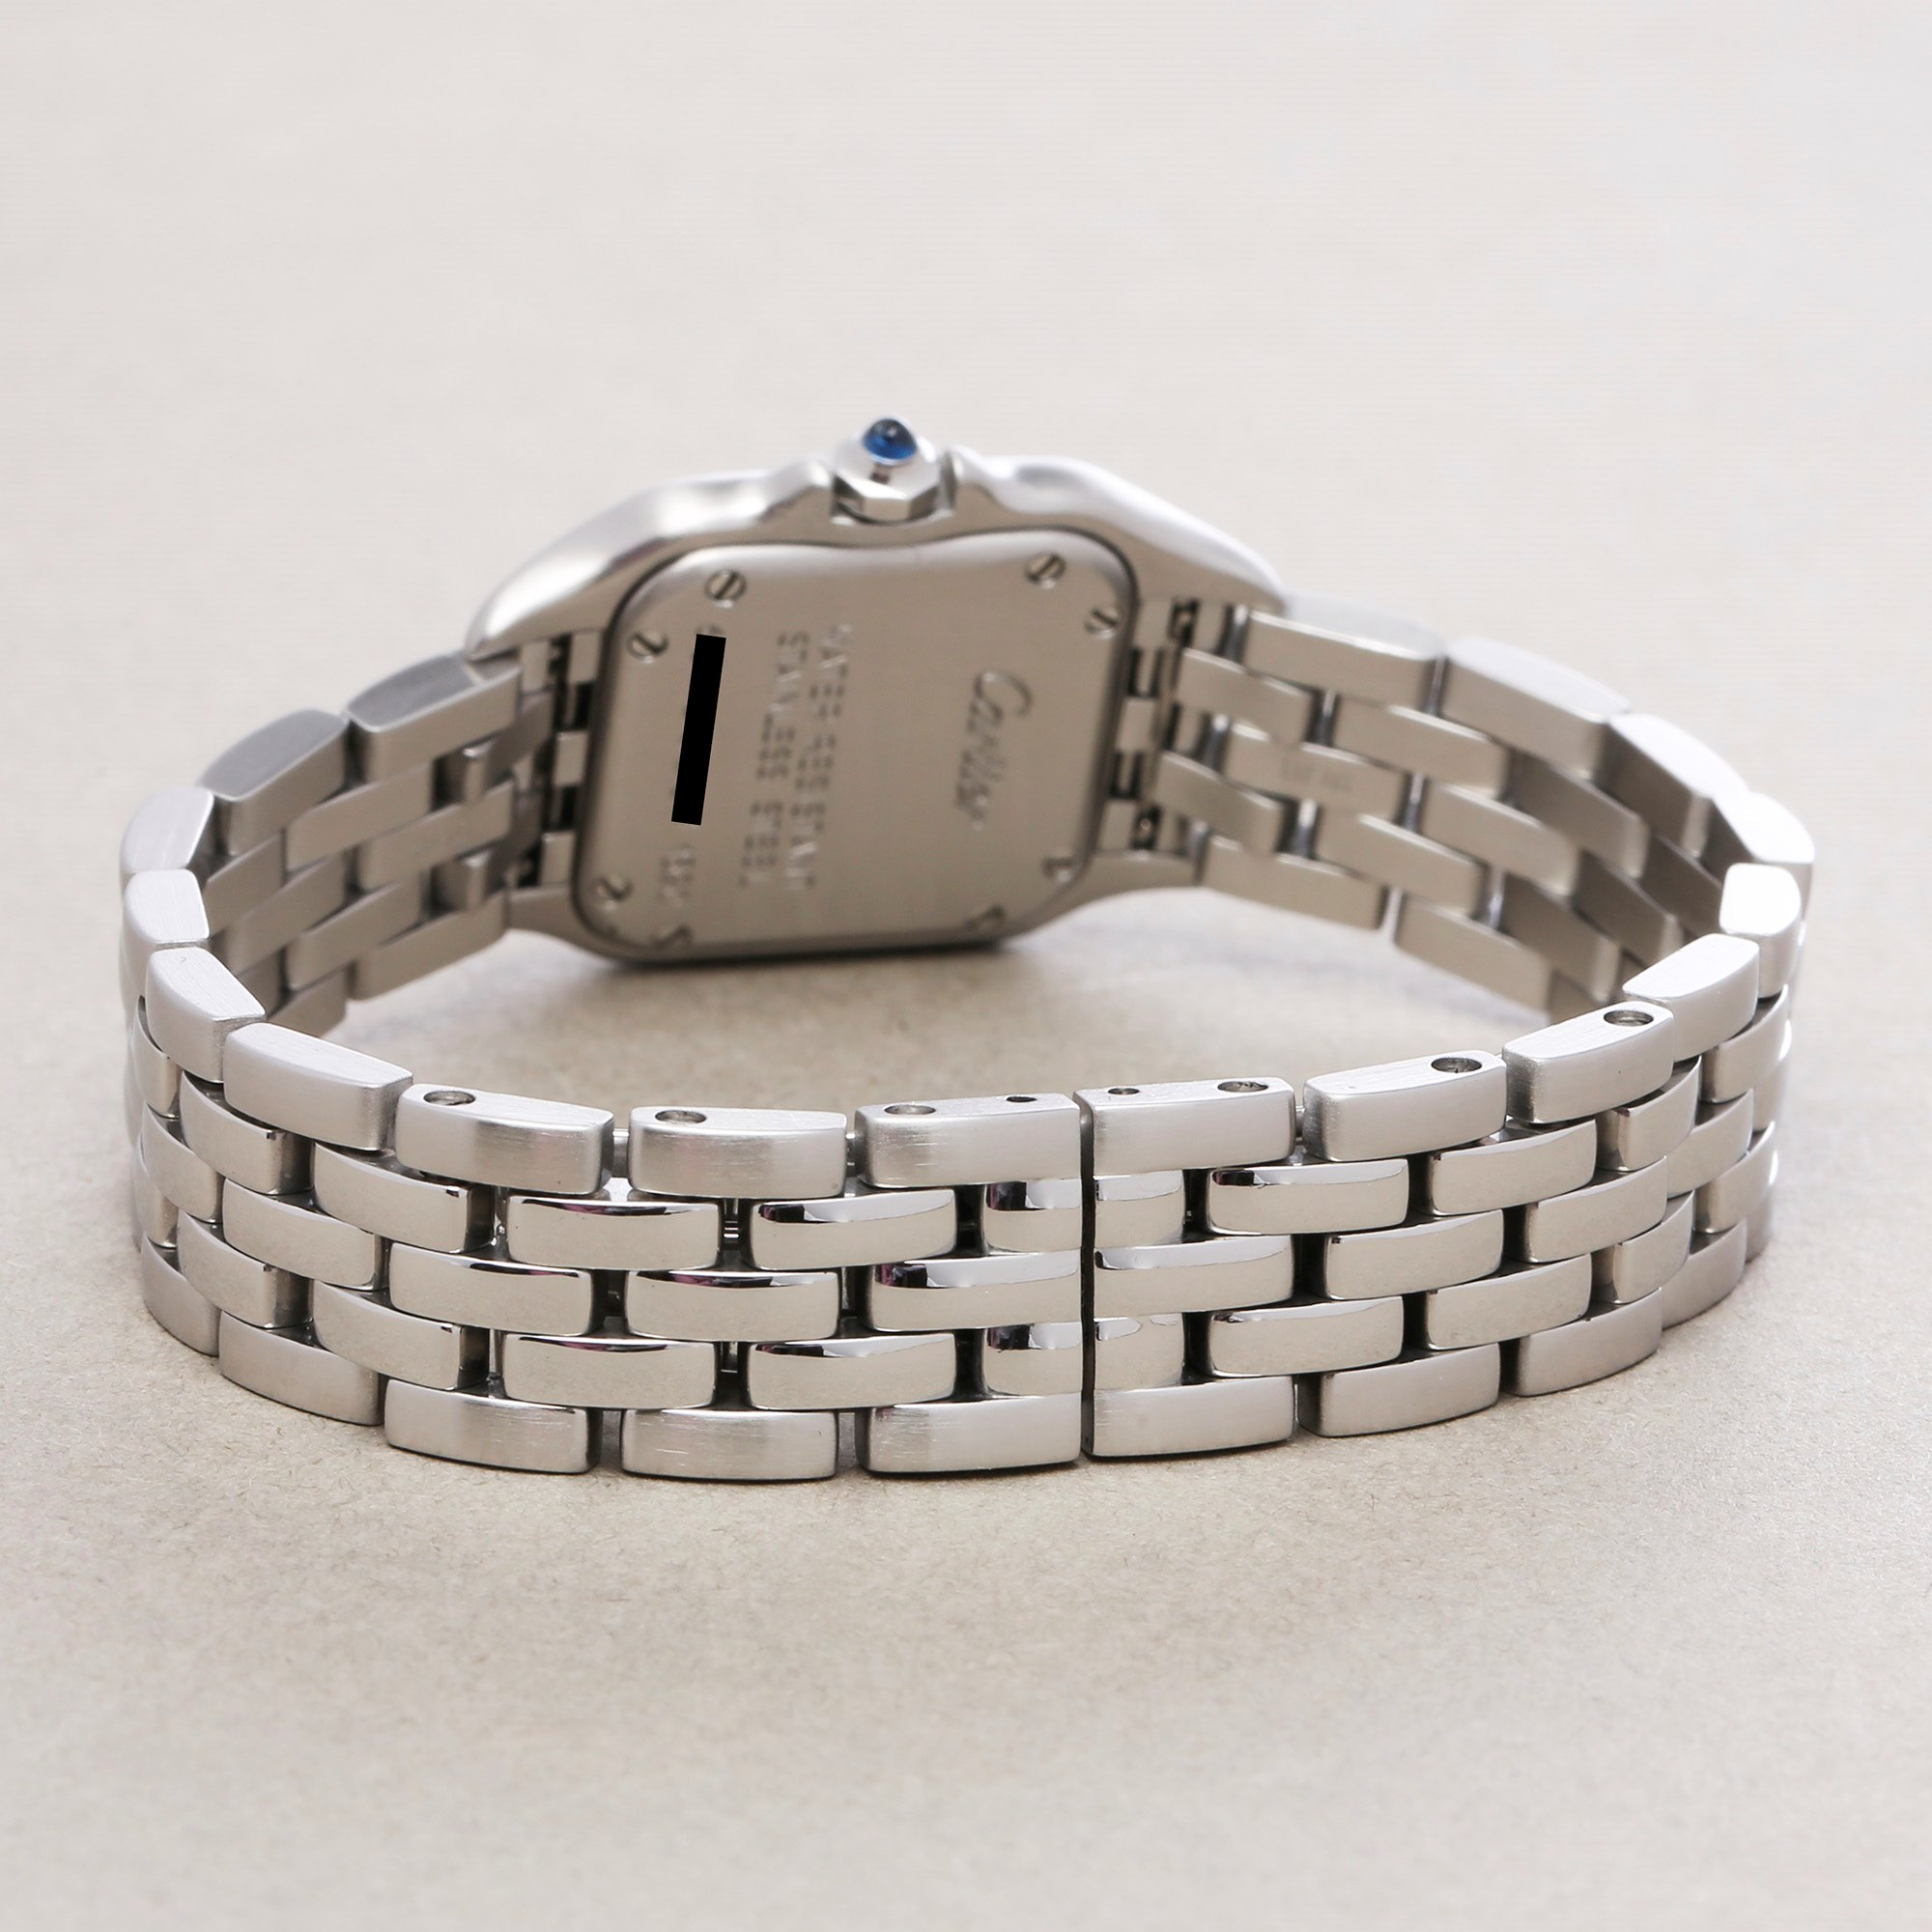 Cartier Panthère 1320 Ladies Stainless Steel Watch - Image 5 of 10